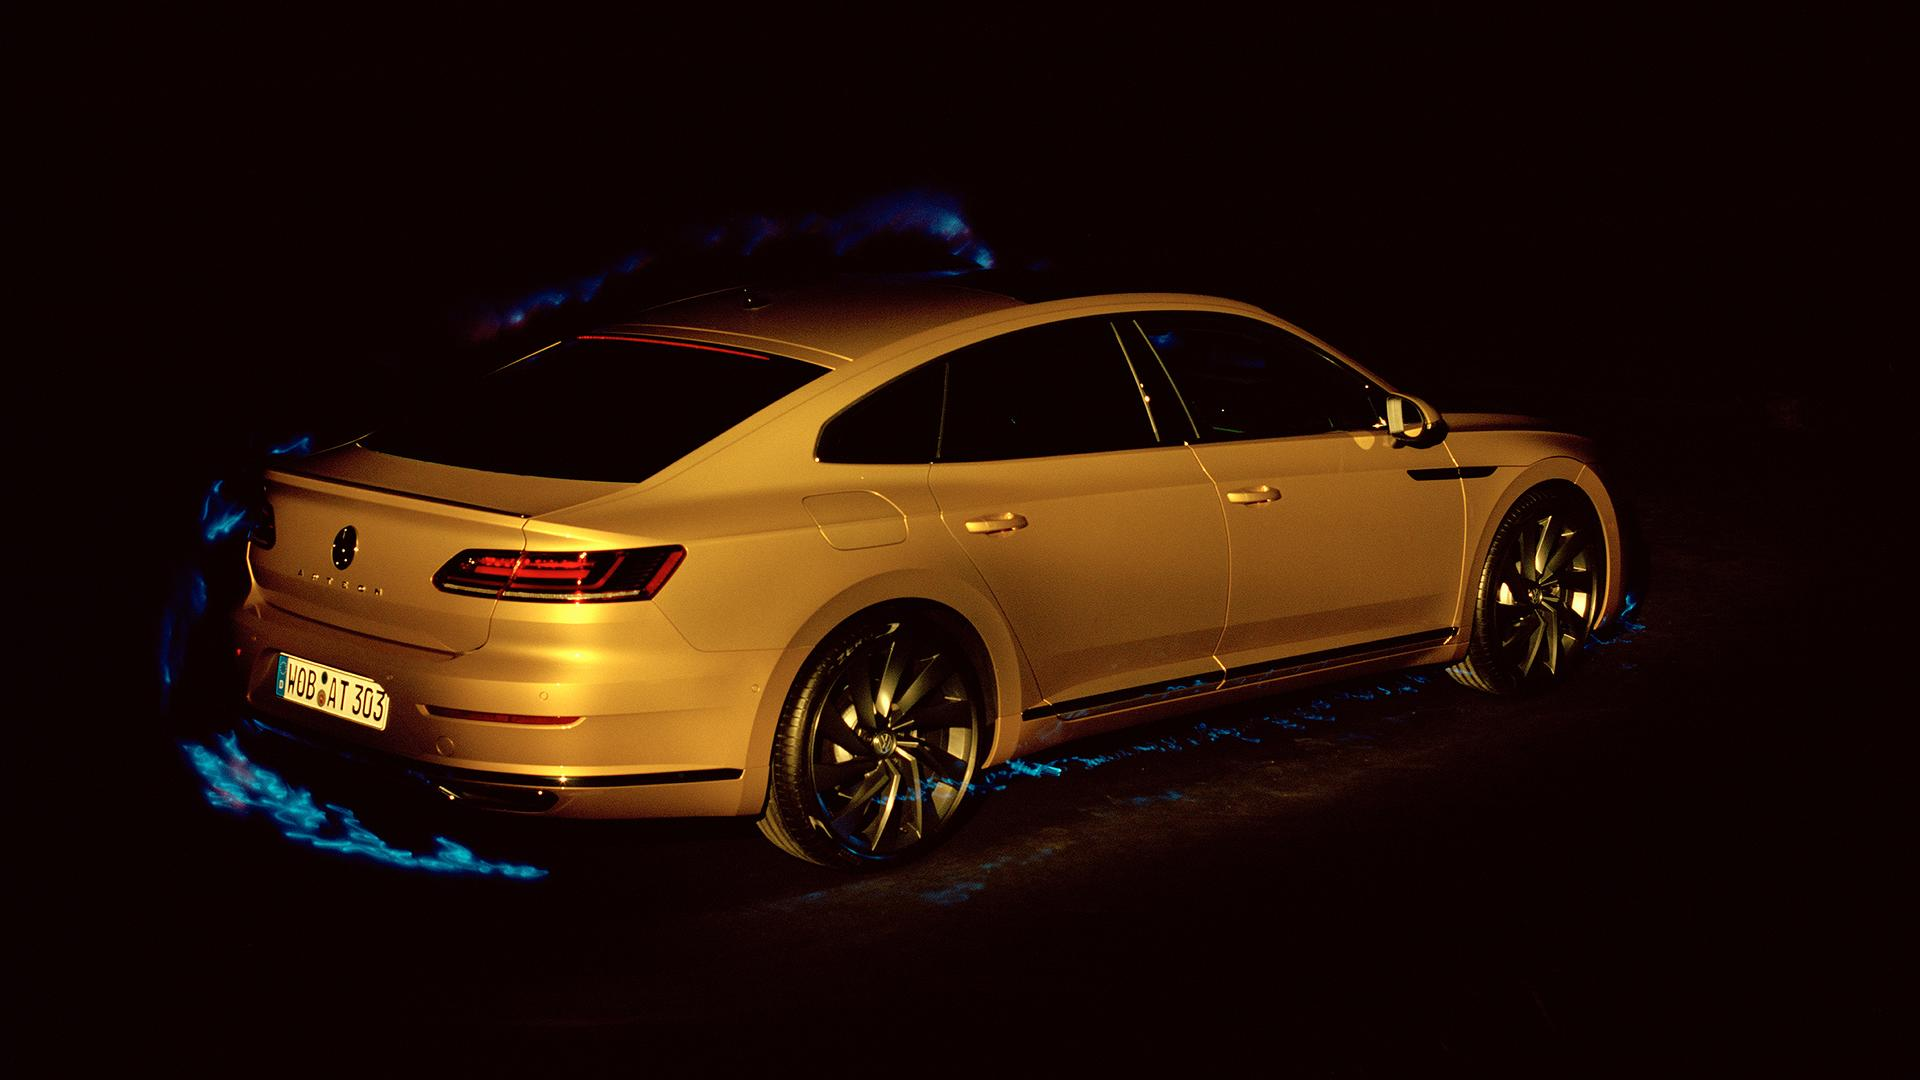 Volkswagen_Arteon_photoshoot_by_Pete_Eckert_04